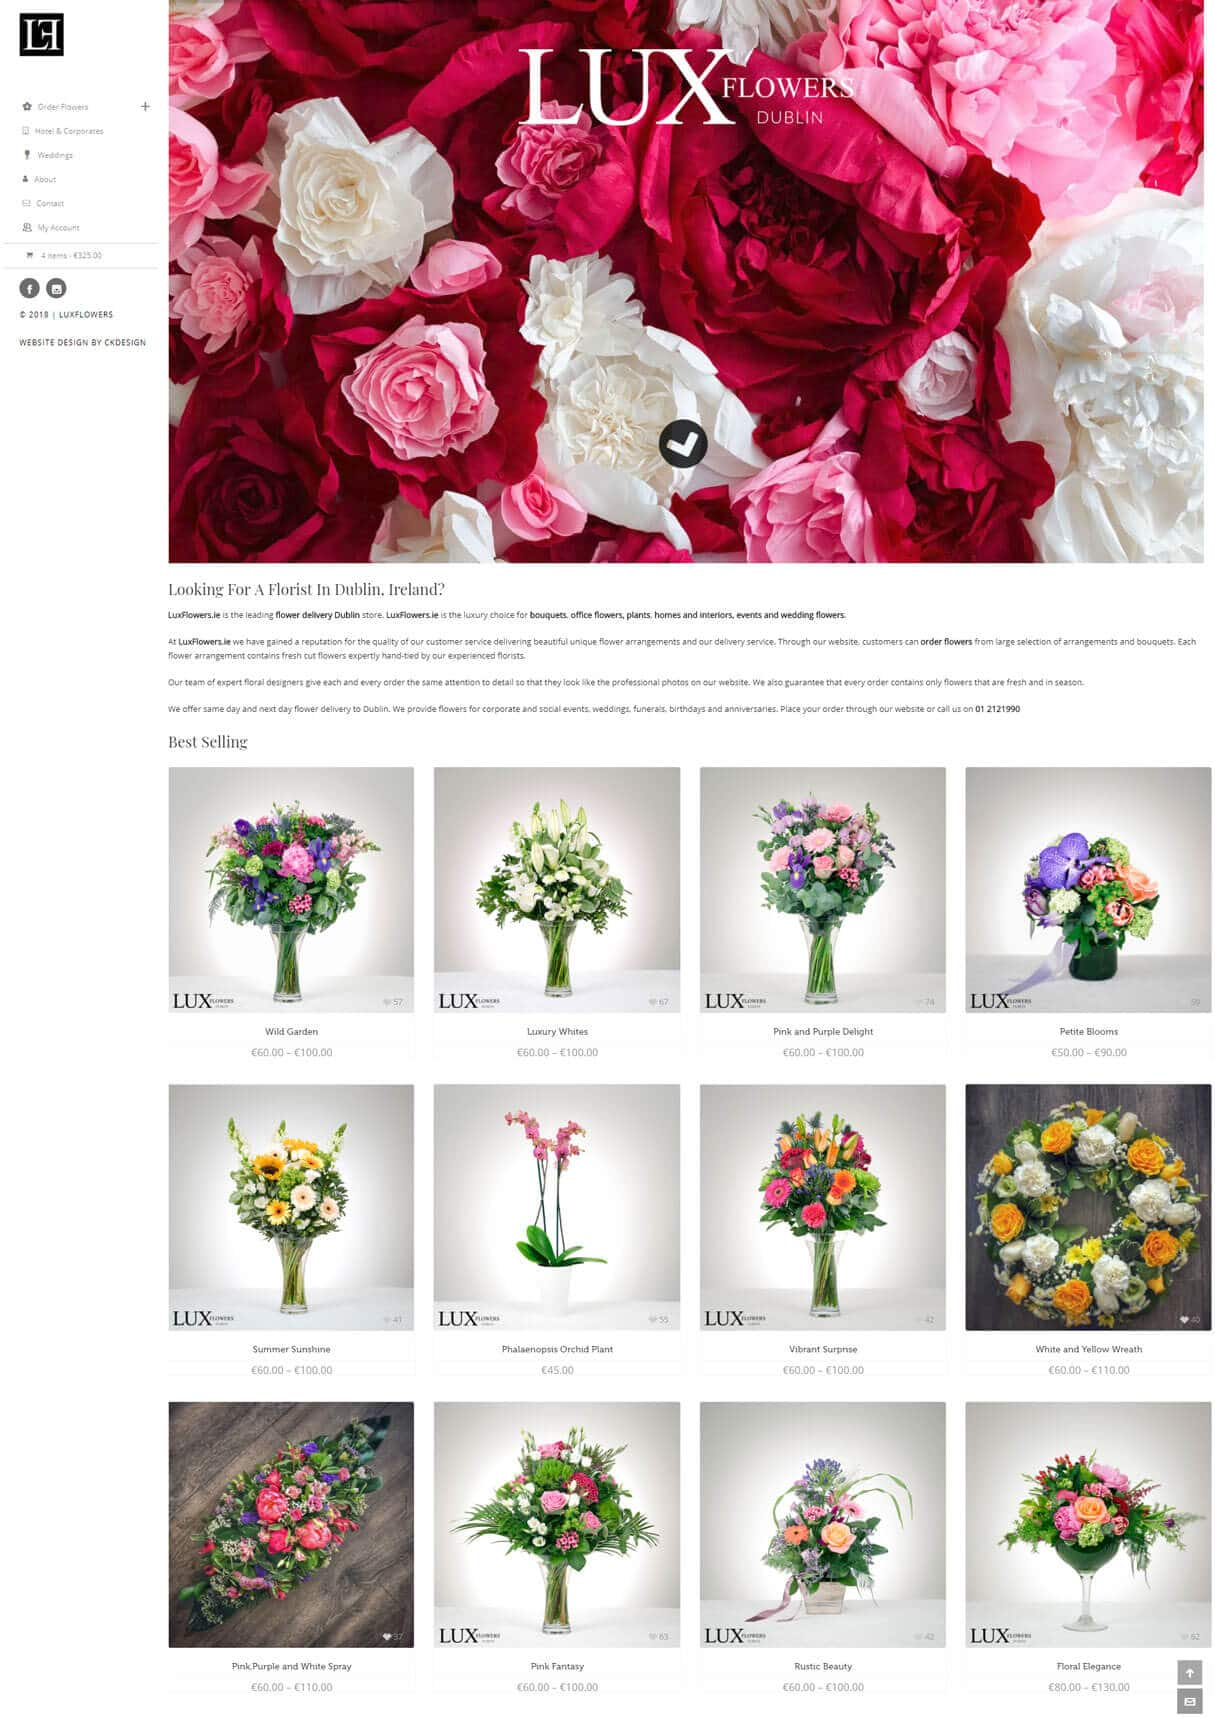 luxflowers website screenshot